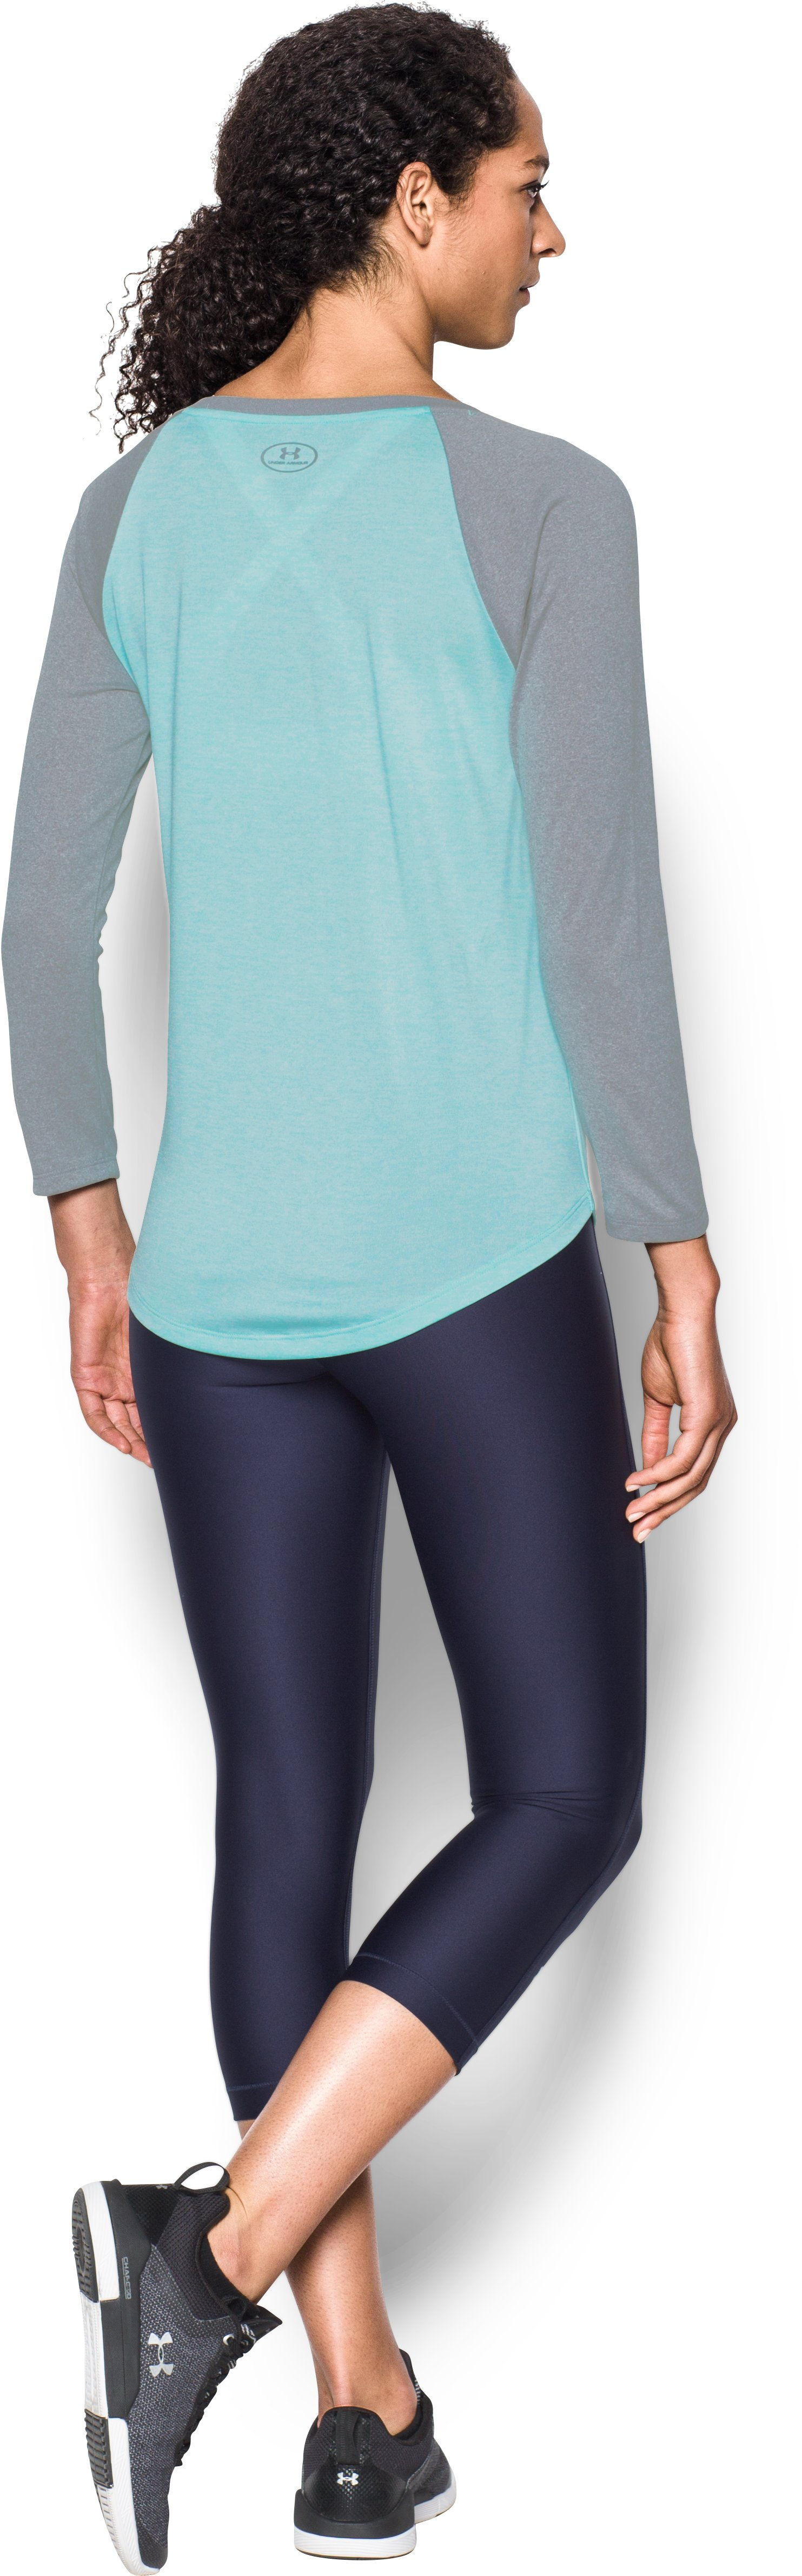 Women's UA Tech™ 3/4 Sleeve - Twist, BLUE INFINITY, Back